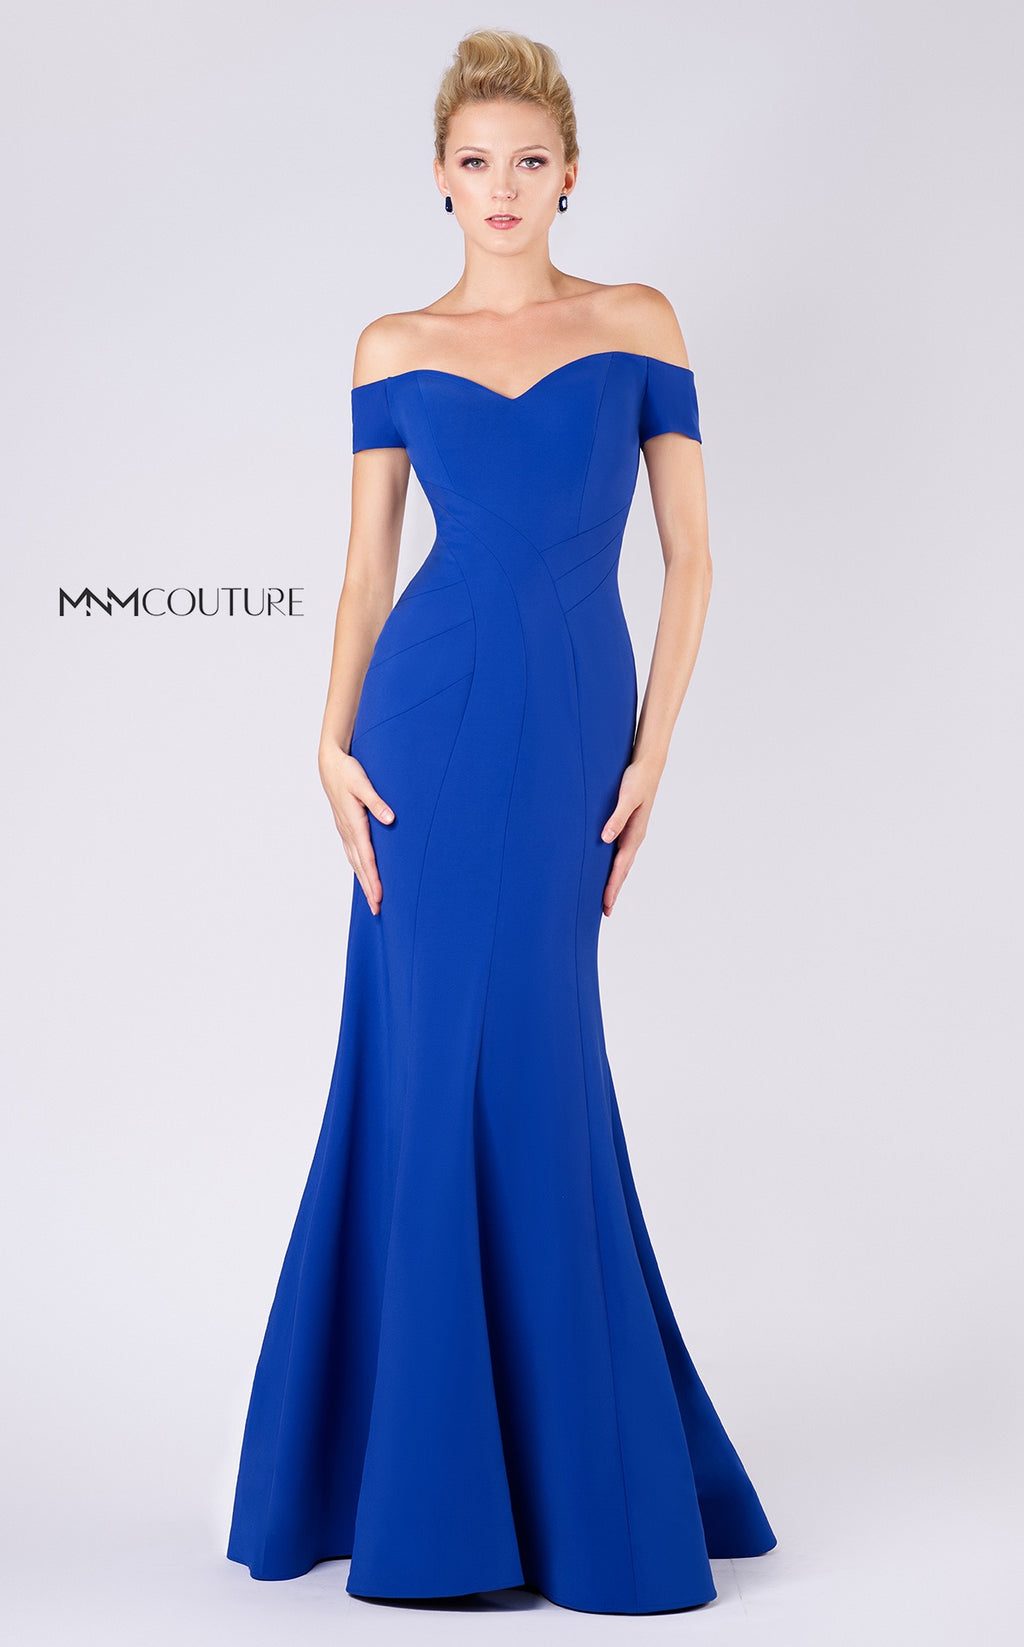 MNM Couture M0005 Crepe Mermaid Gown - CYC Boutique